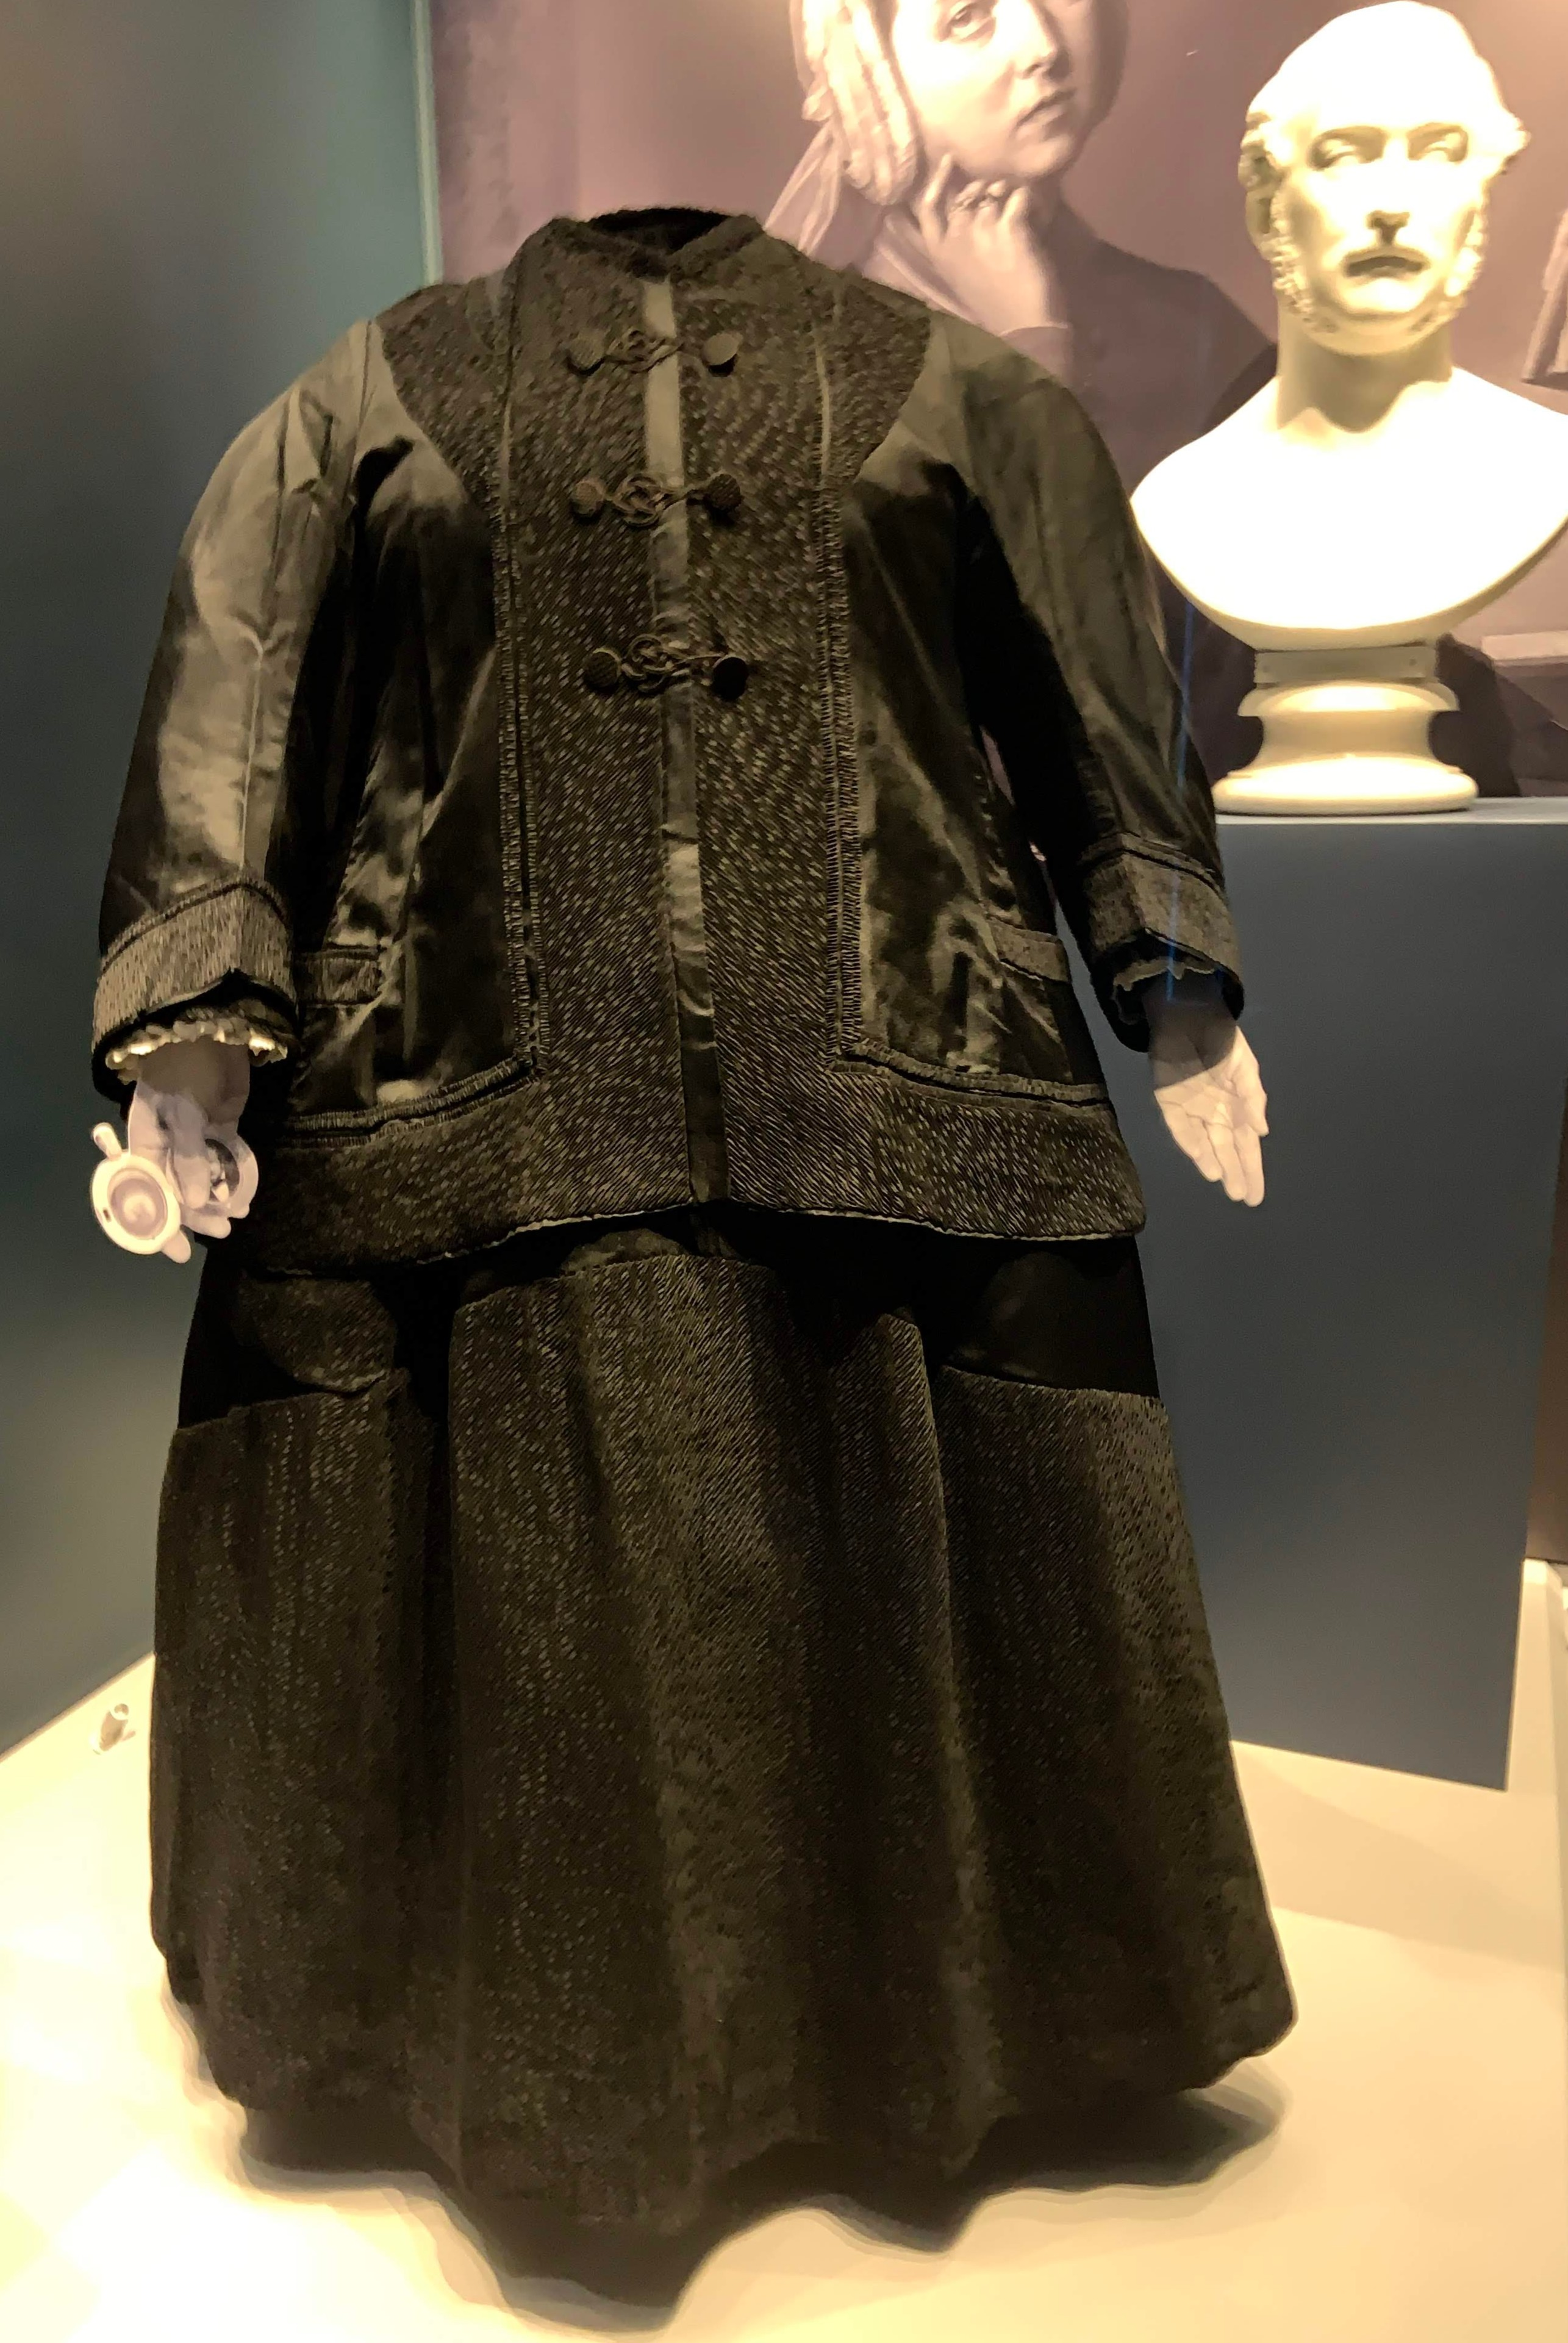 Queen Victoria's day dress and jacket, 1899.